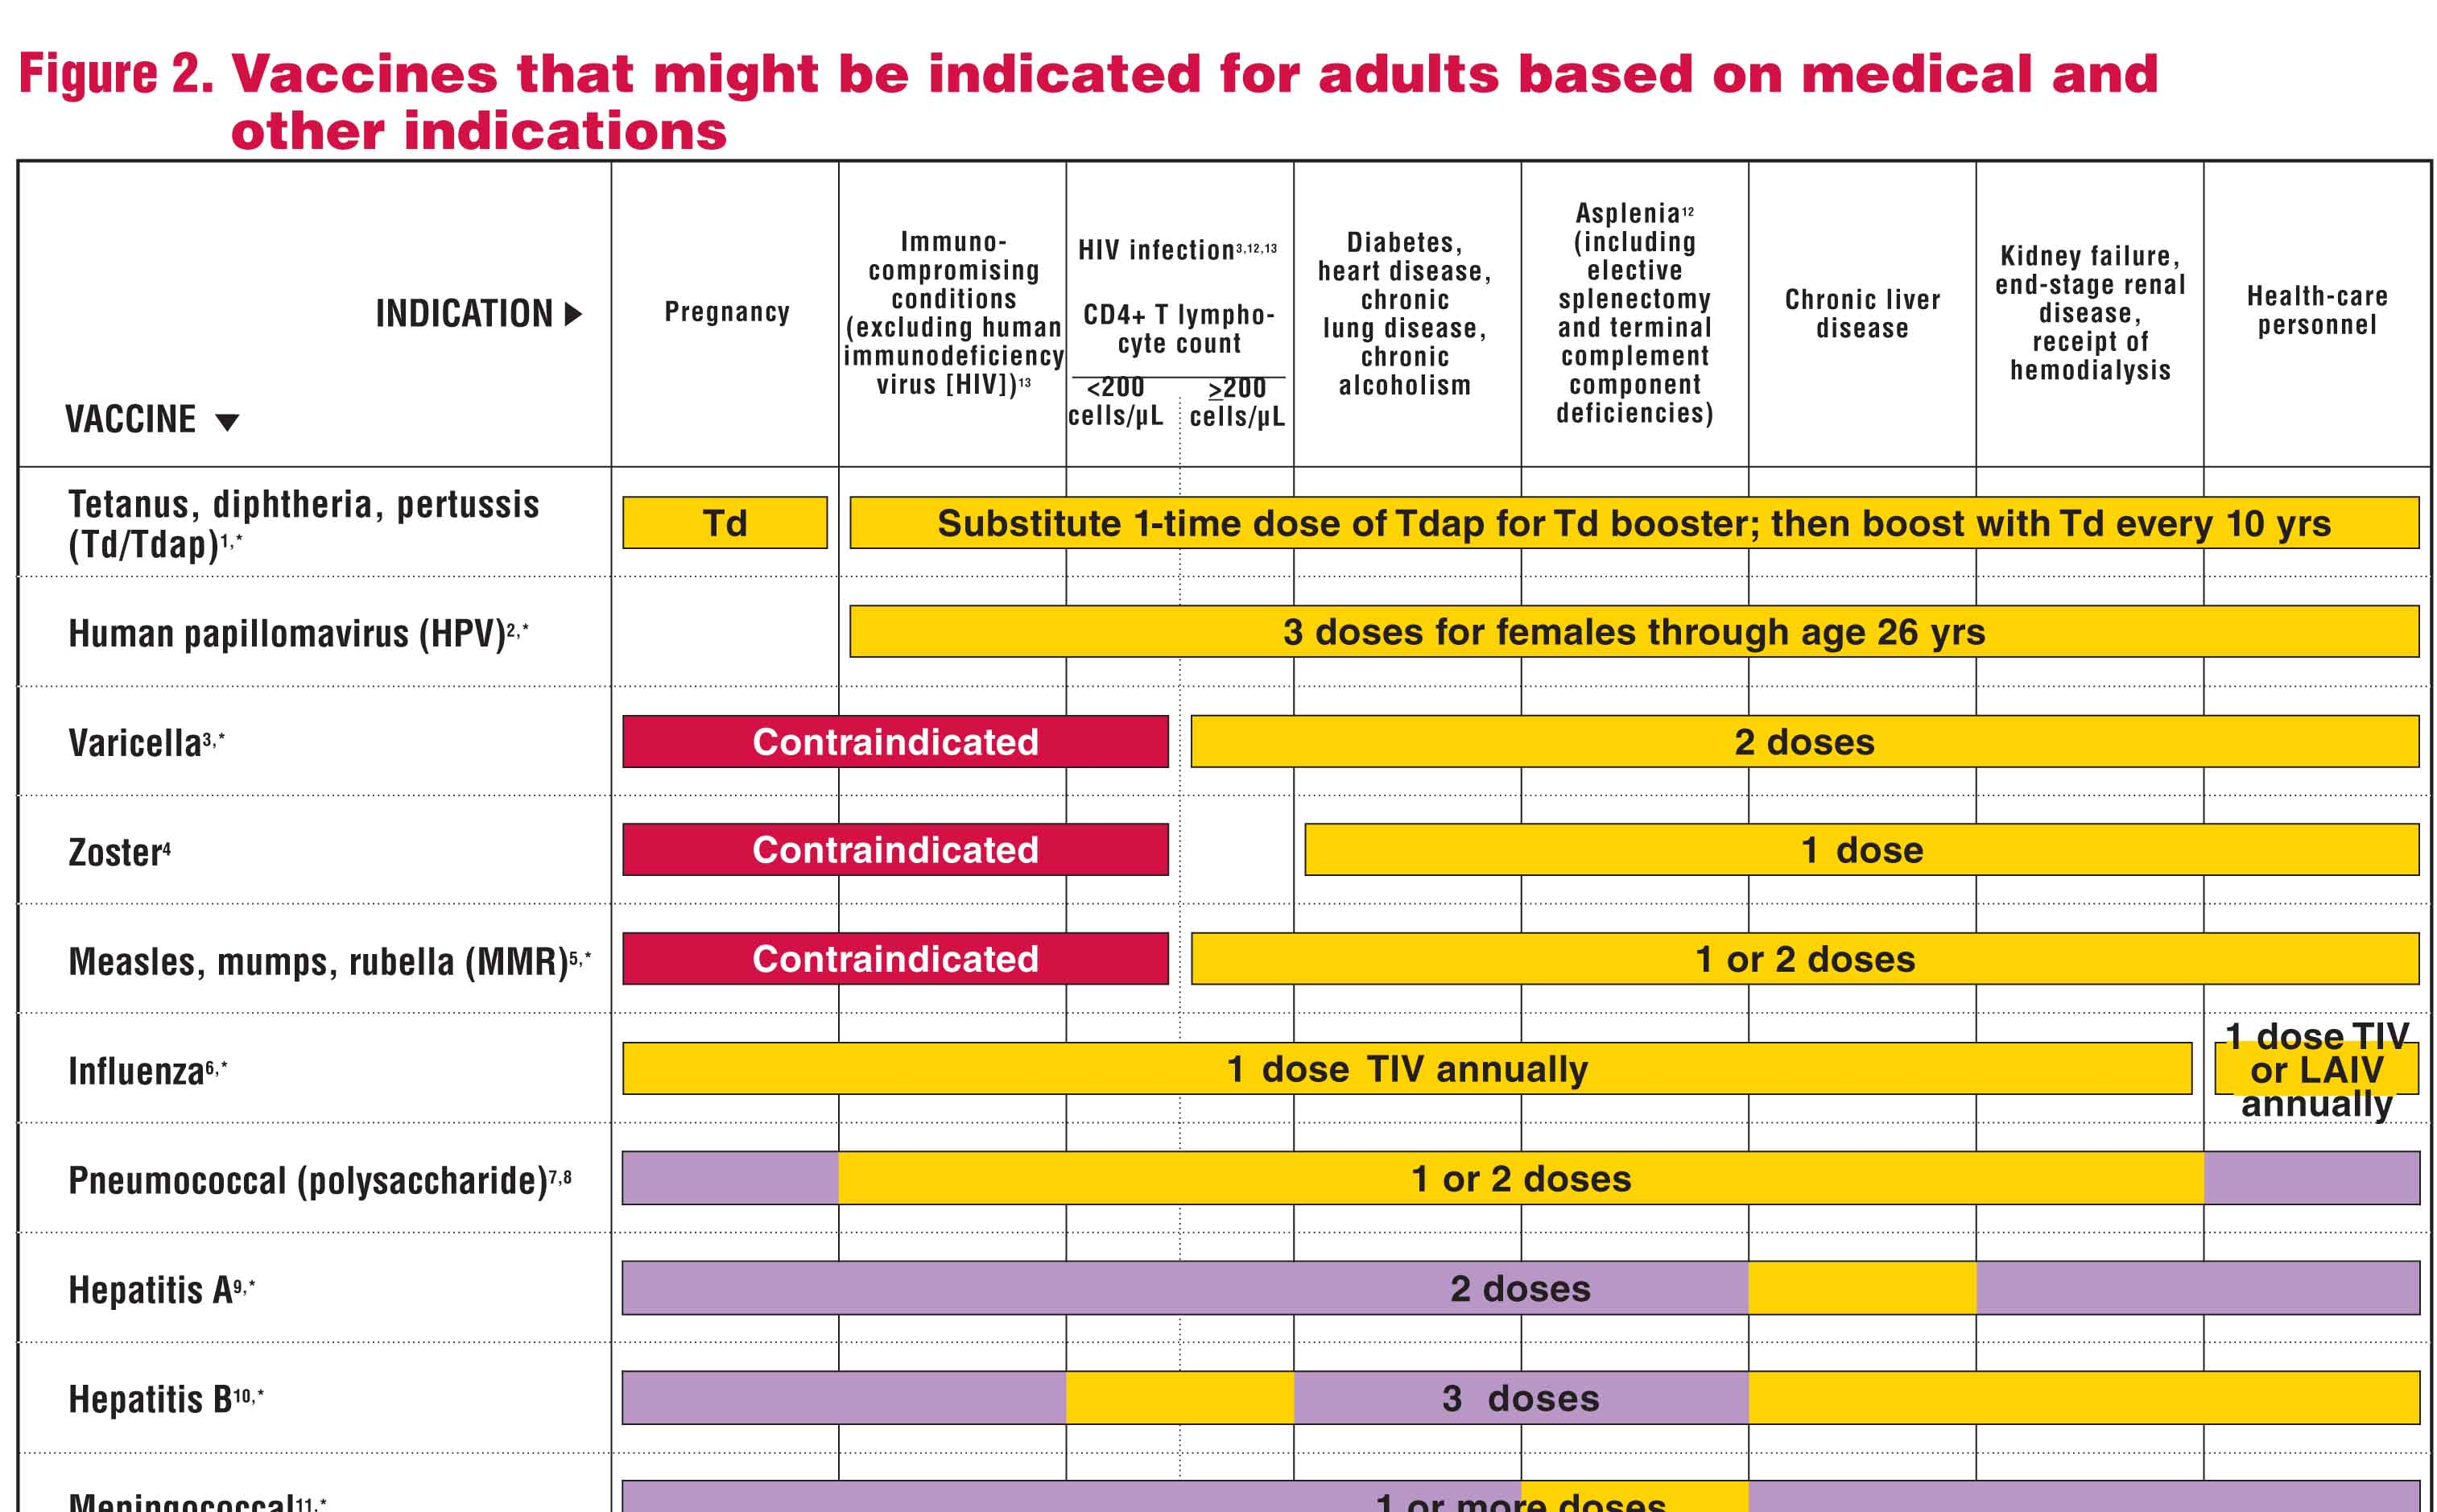 are you current? here is a checklist of vaccines for adults. don't